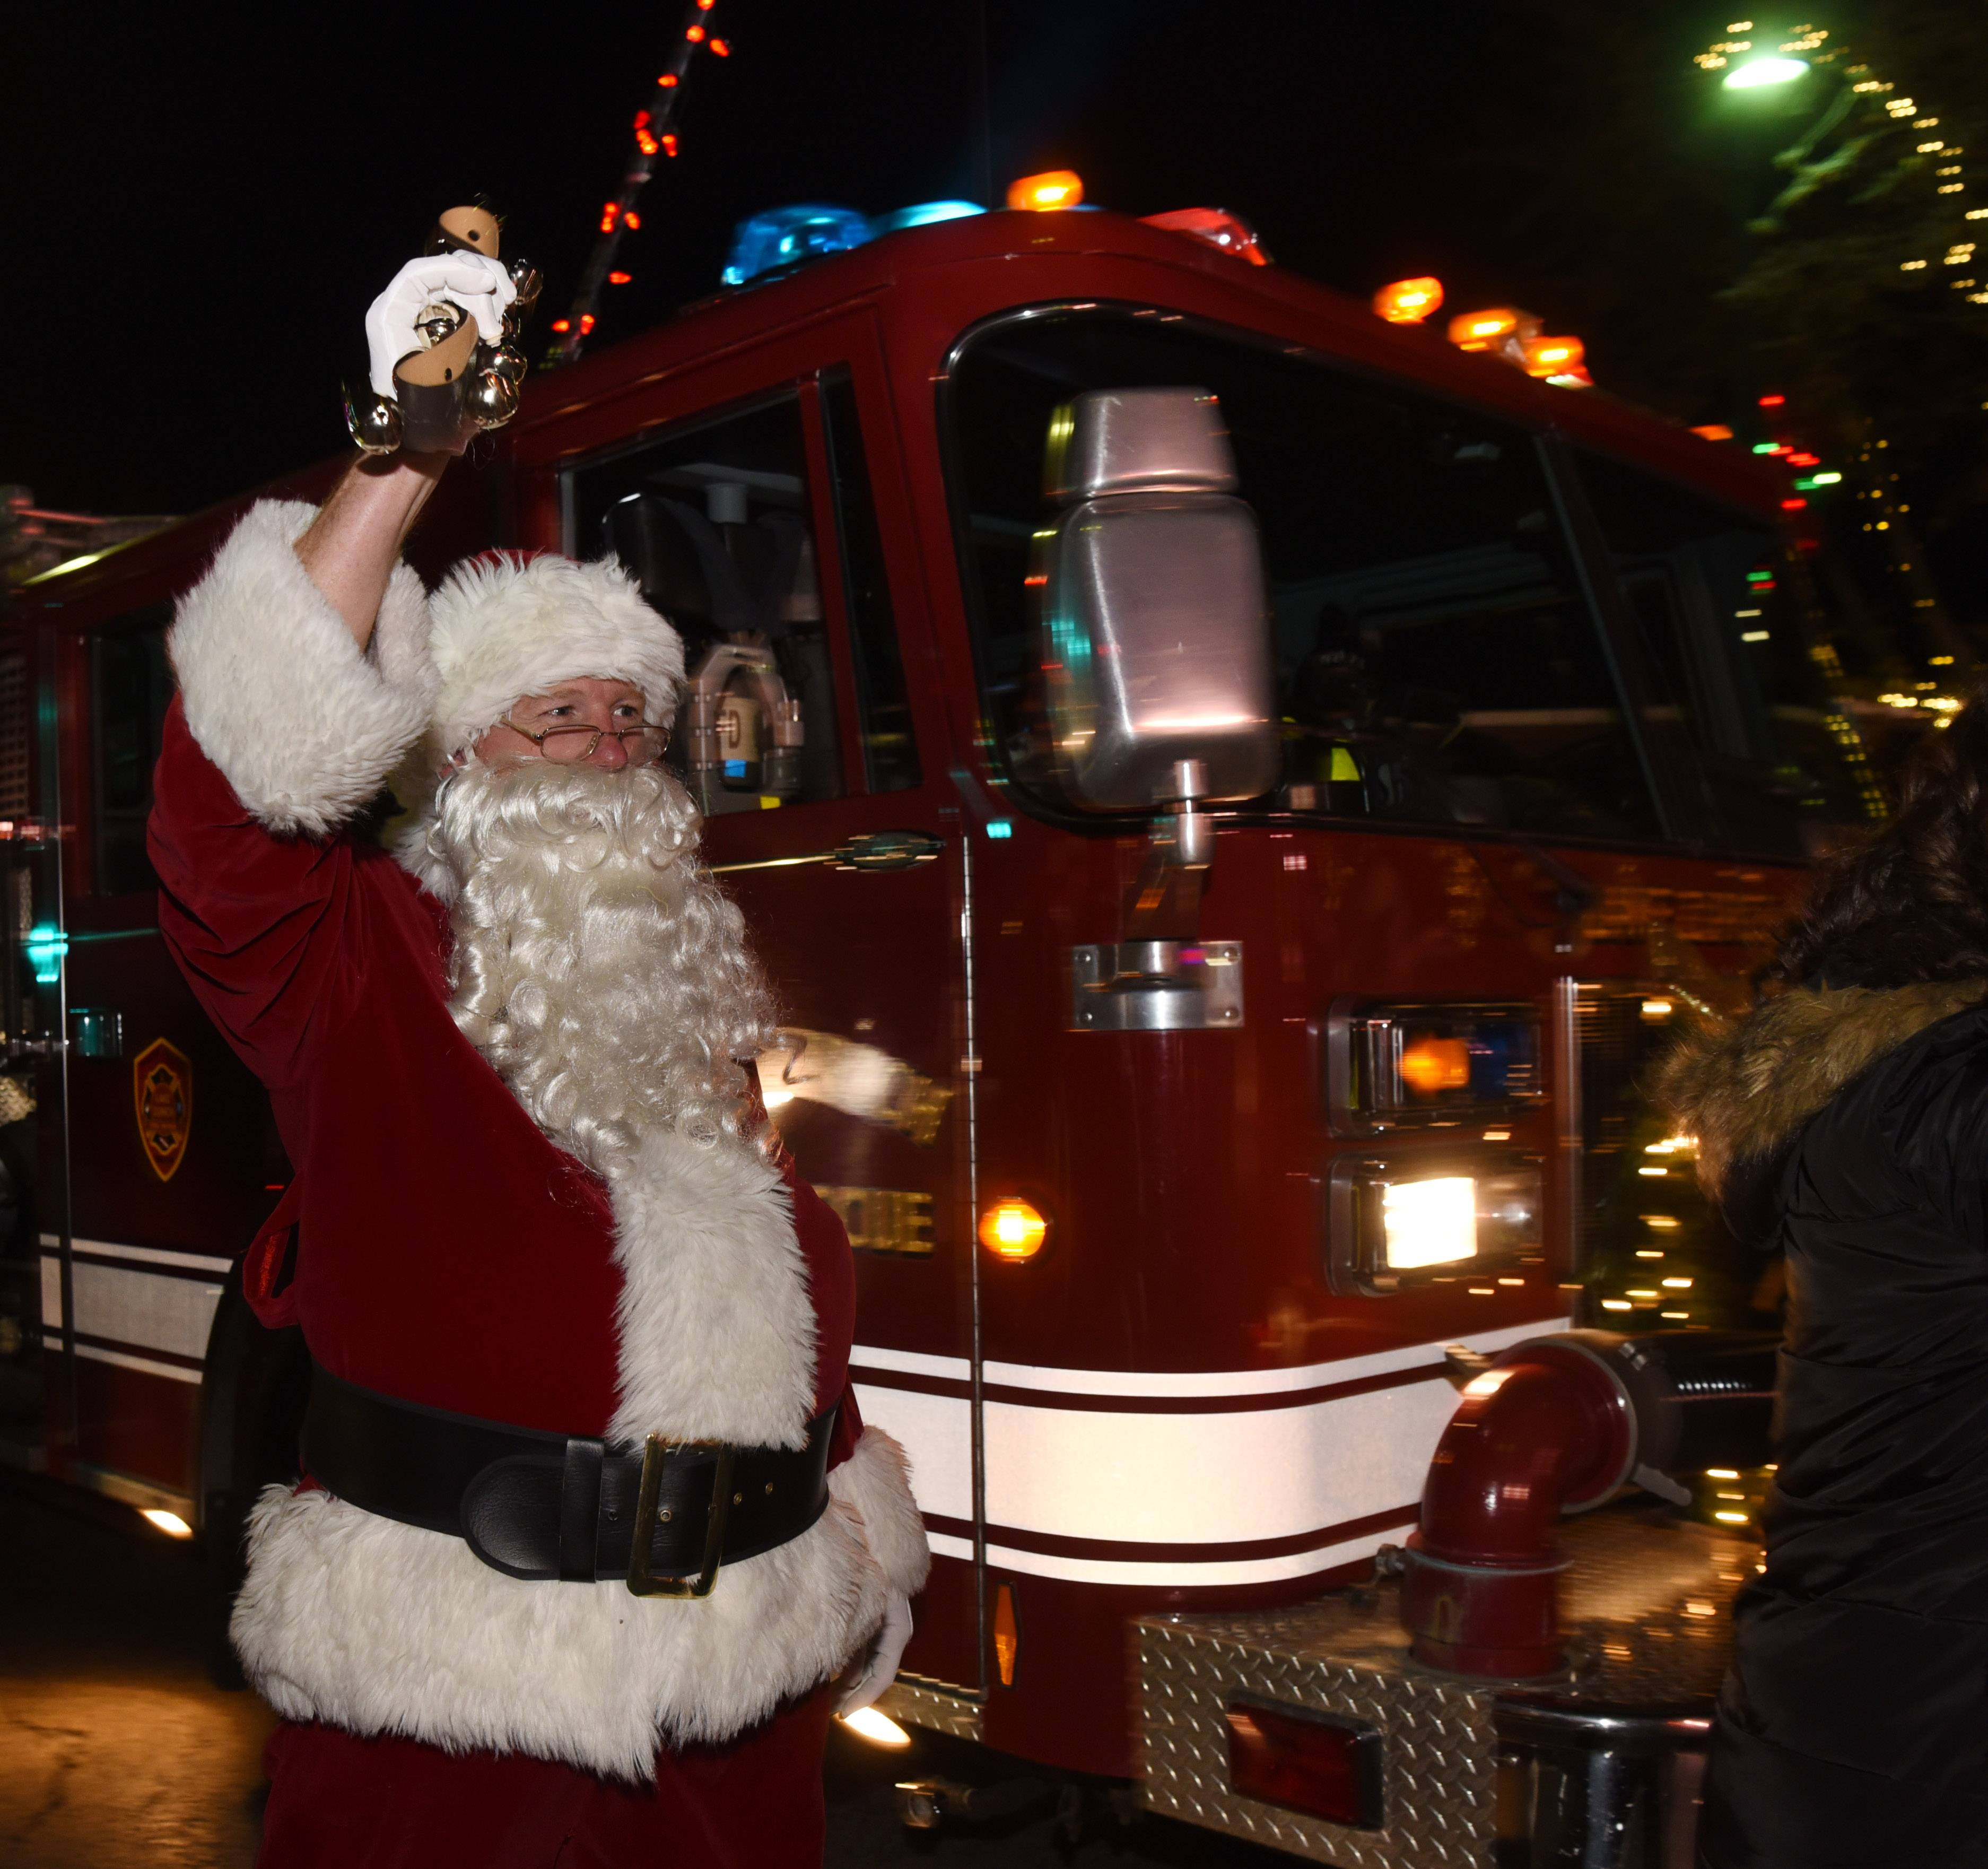 Santa Claus arrives by fire truck during the Miracle on Main Street event at Rotary Park in downtown Lake Zurich.